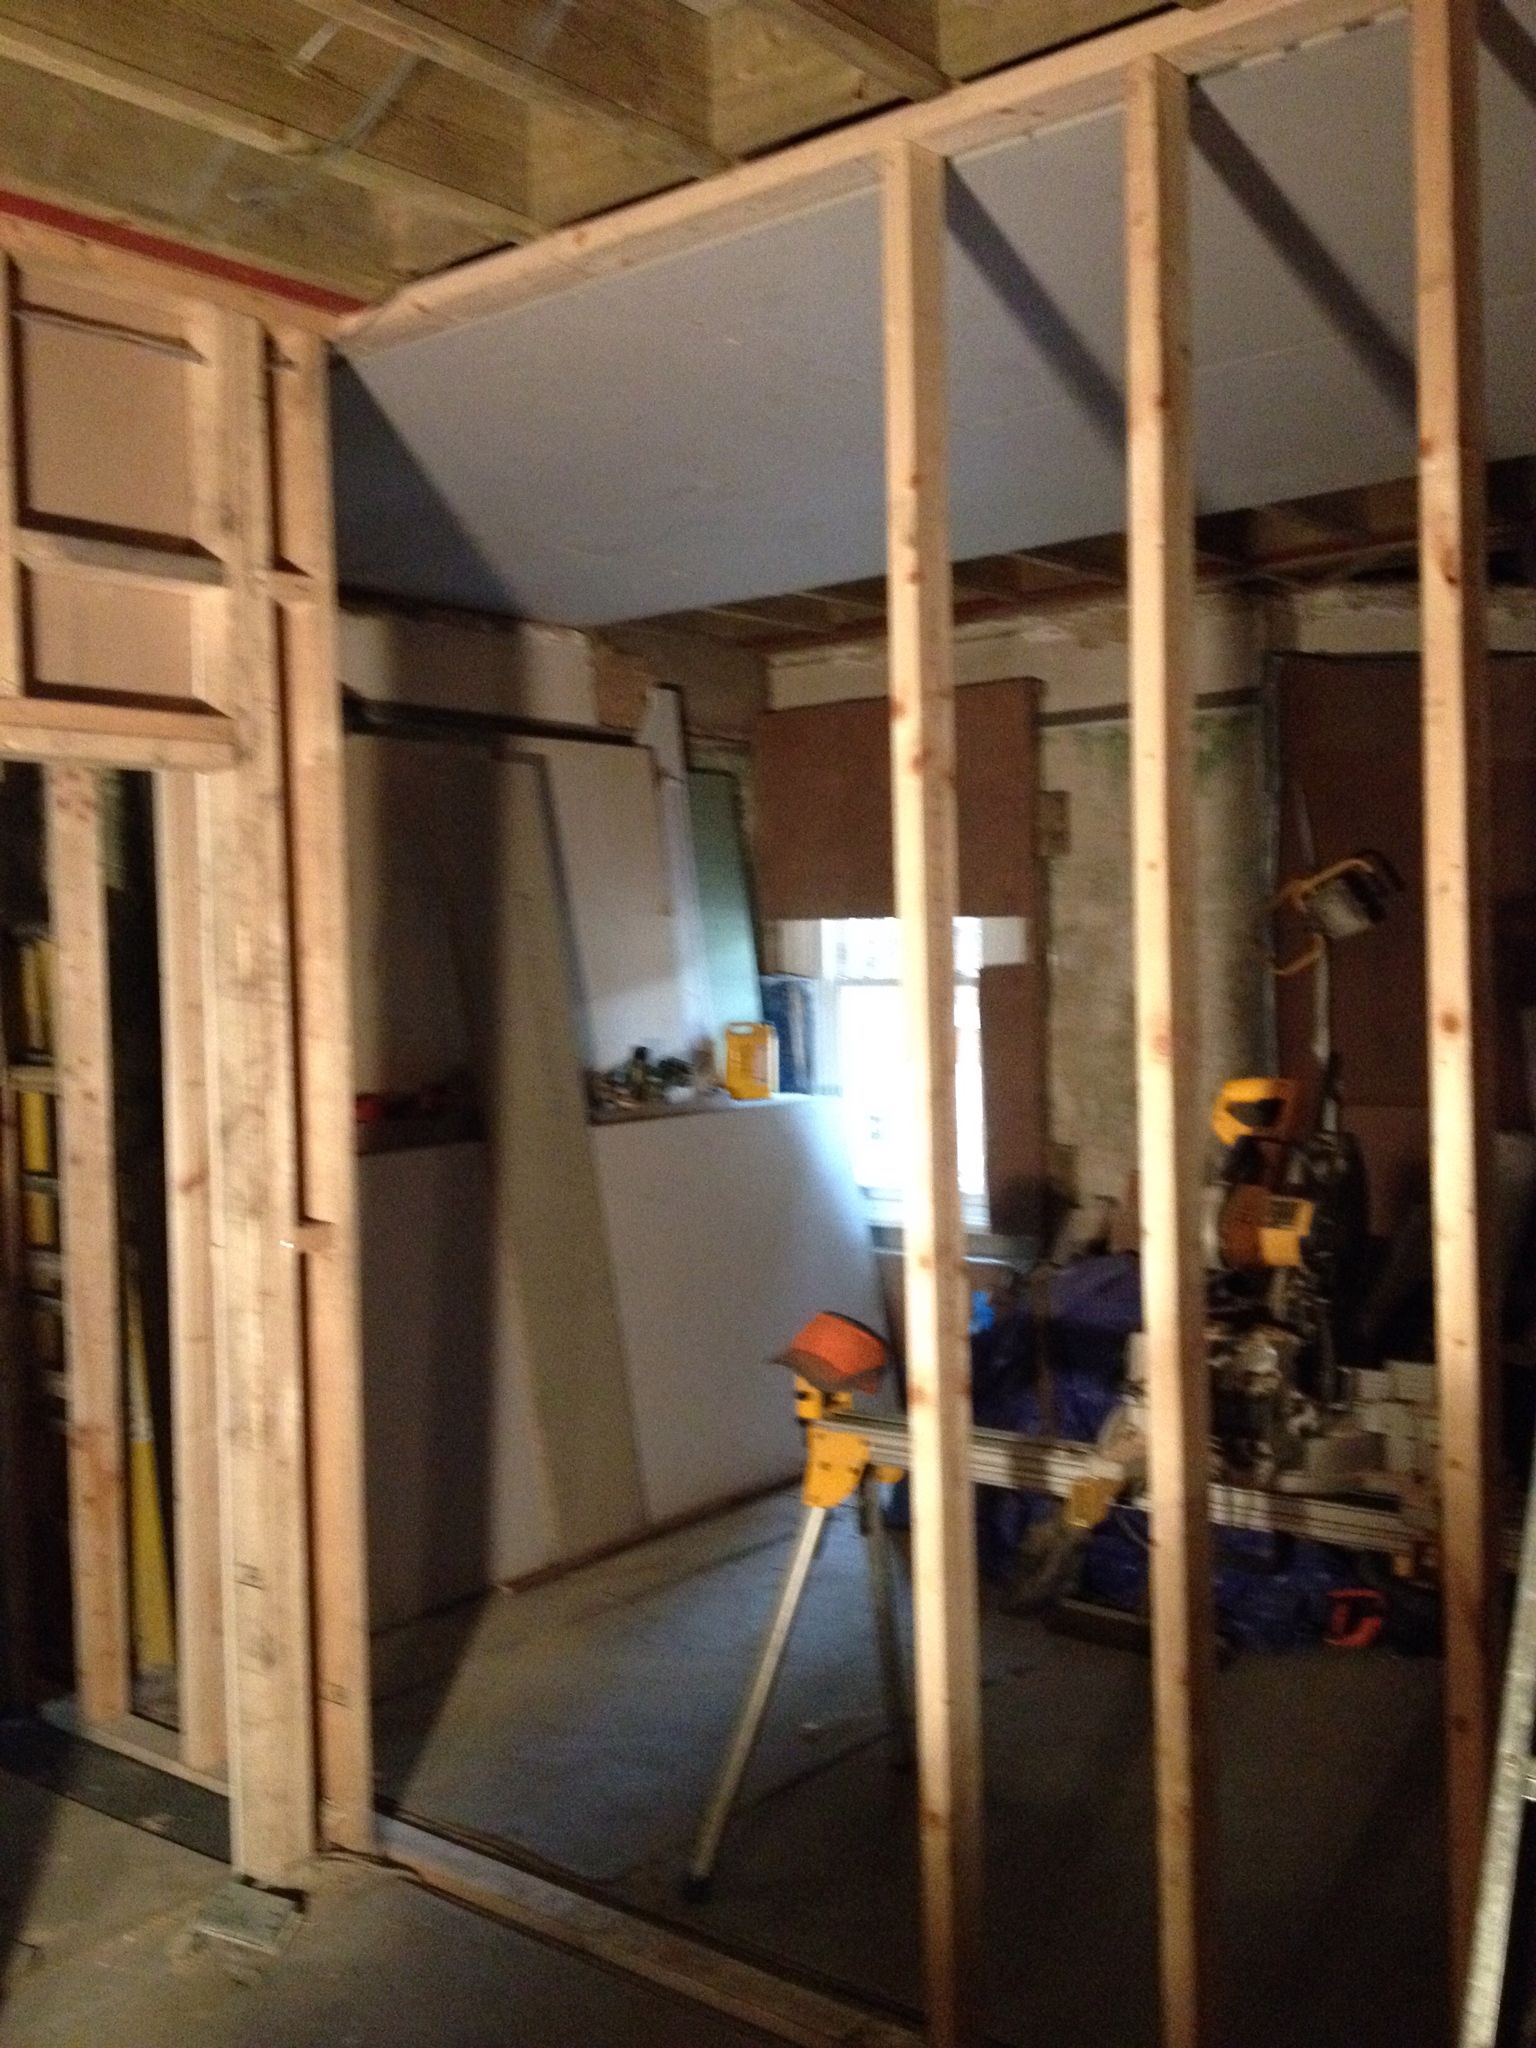 New Bedroom Partition Stud Wall, With Barn Door Opening